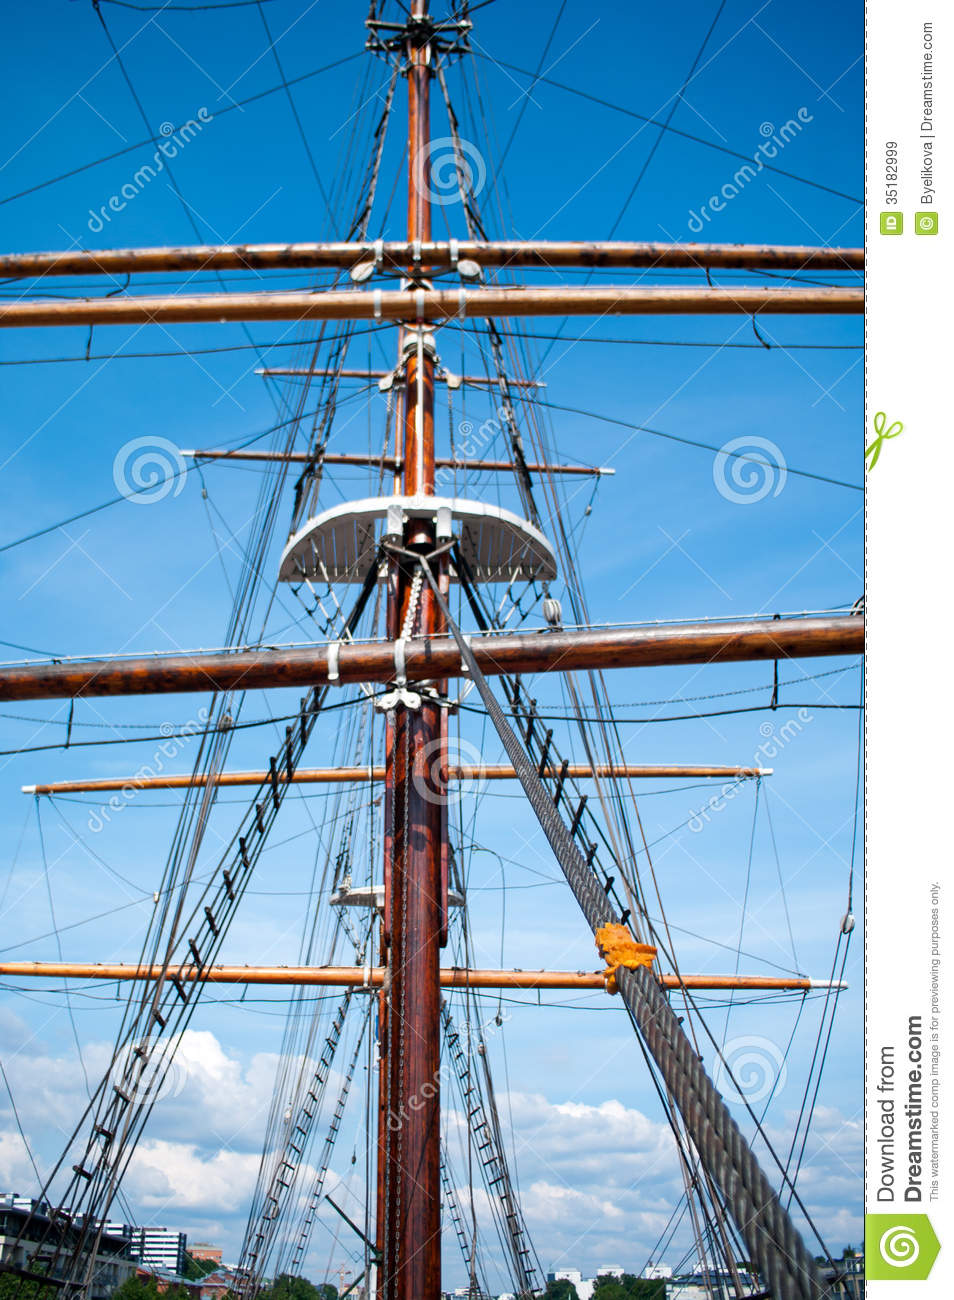 Rope Ladder To The Main Mast Of The Ship Royalty Free Stock Images.